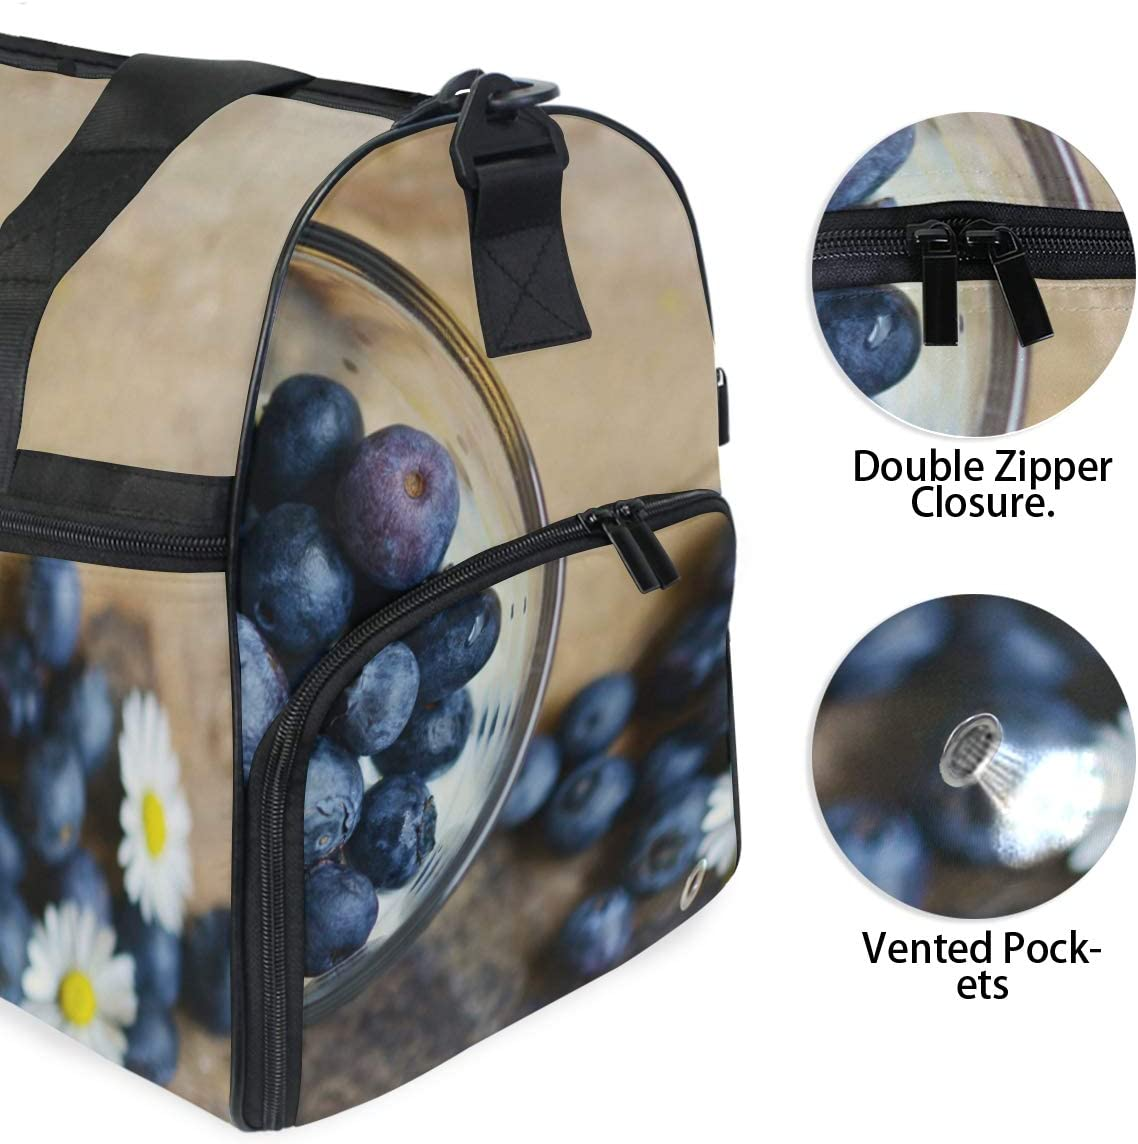 FAJRO Gym Bag Travel Duffel Express Weekender Bag Blueberry And Daisy Carry On Luggage with Shoe Pouch